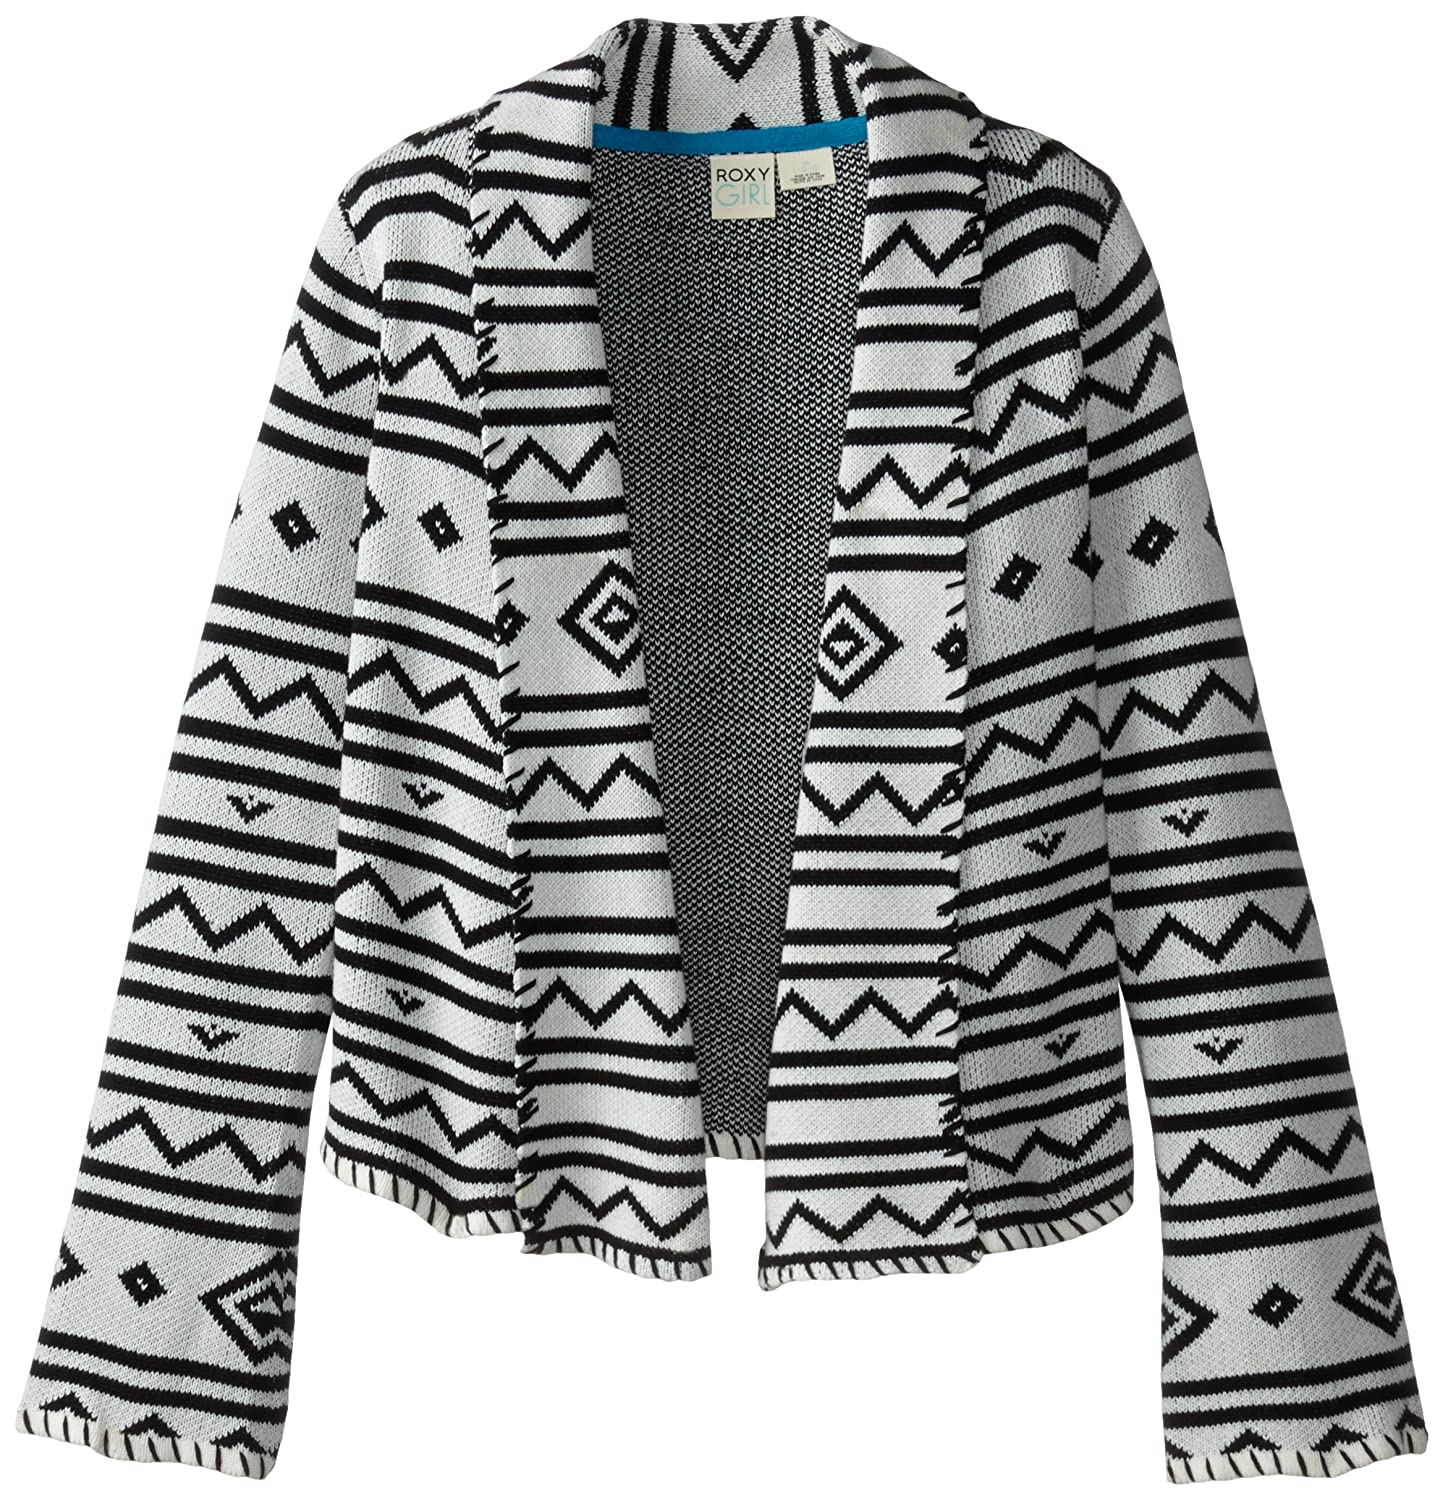 Roxy Girls Dawn Cozy Sweater (Little Big Kids) Roxy Girls 7-16 RF56067